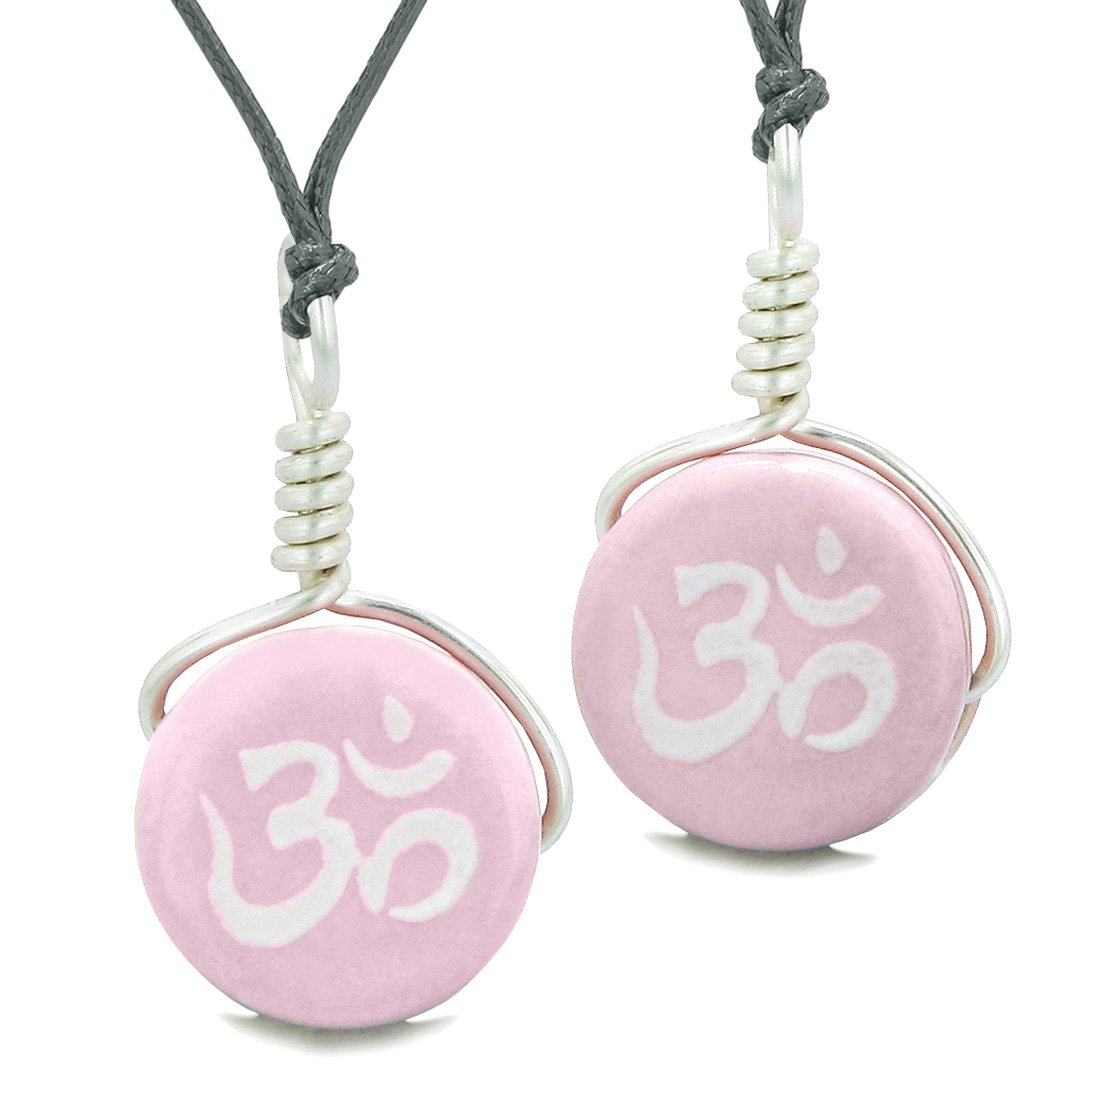 Love Couples or Best Friends Set Cute Ceramic Tibetan Pink OM Ohm Lucky Charm Amulet Adjustable Necklaces